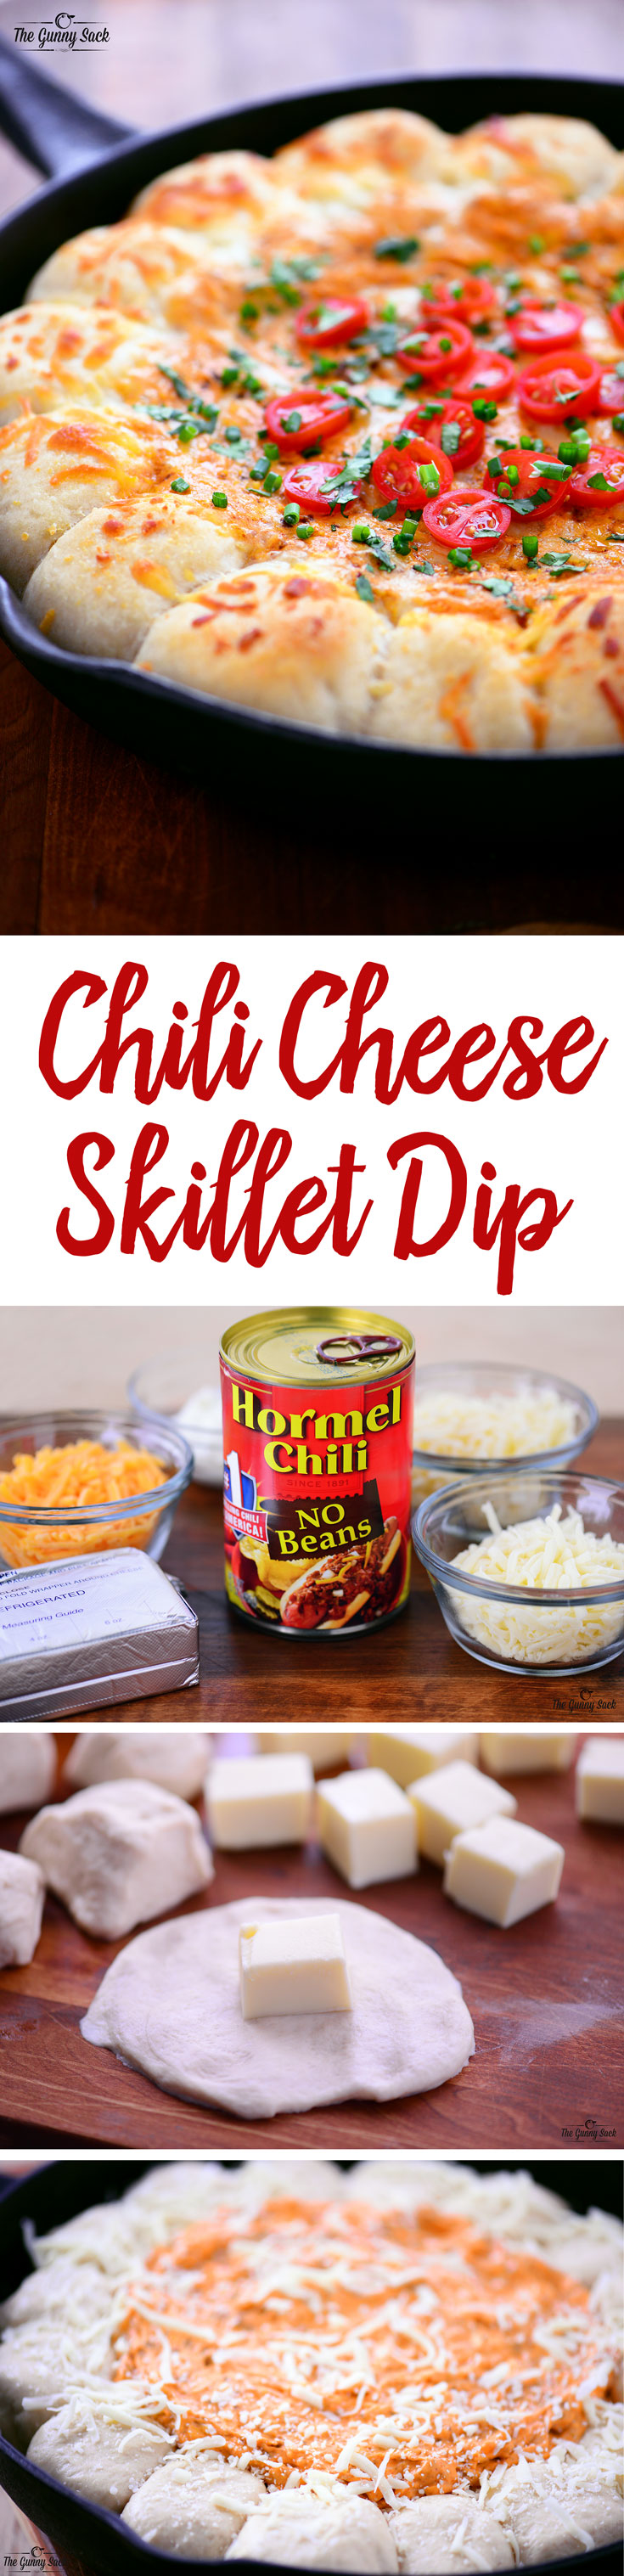 This appetizer recipe for Chili Cheese Skillet Dip with ...